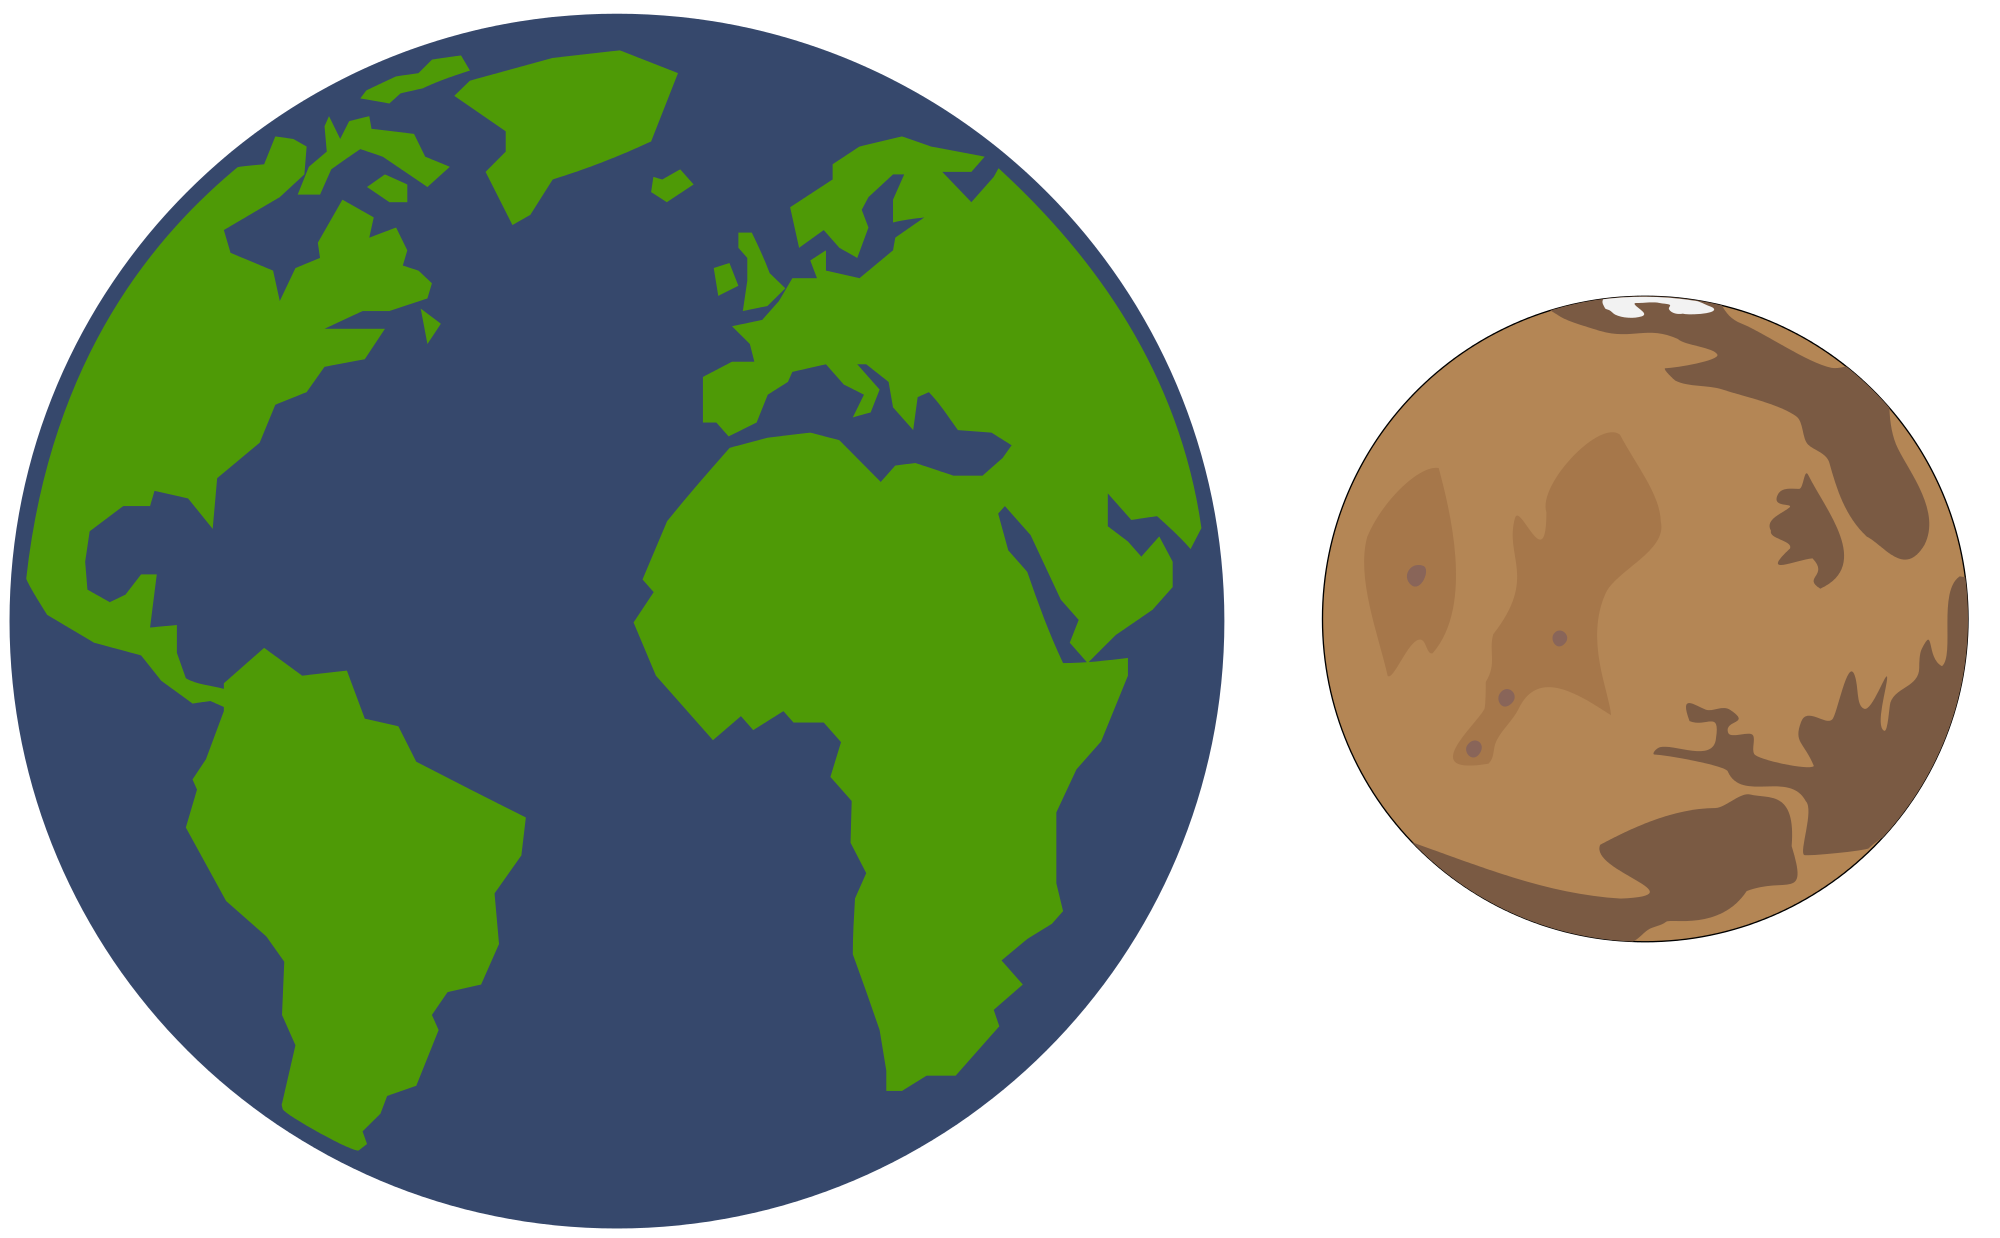 Earth svg #14, Download drawings